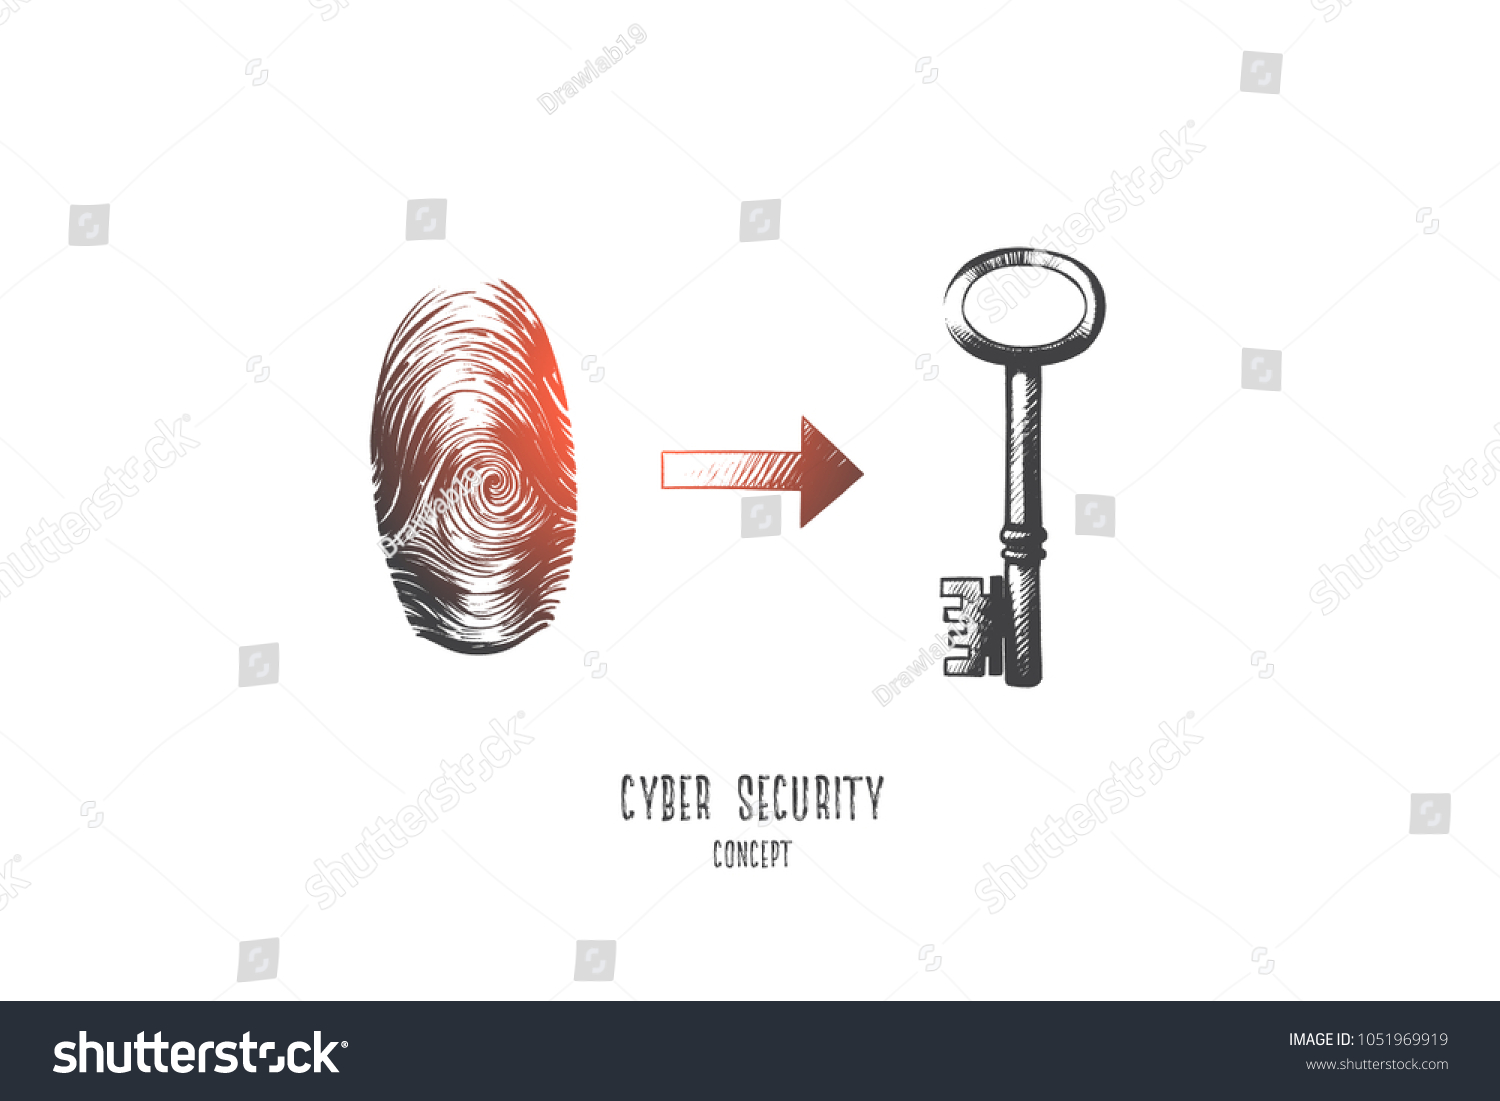 Cyber Security Concept Hand Drawn Digital Stock Vector Royalty Free